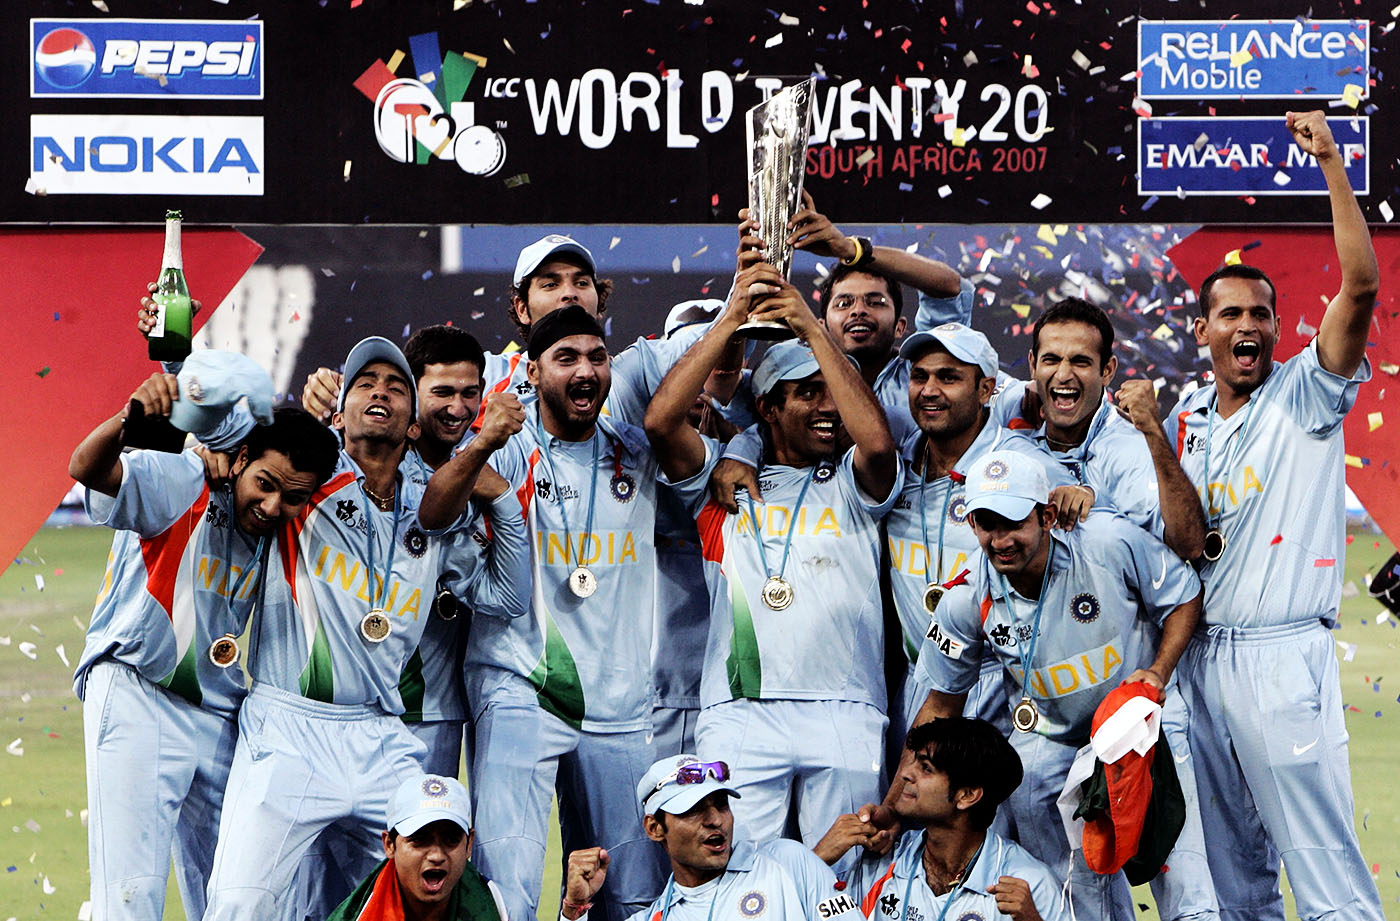 India lift the ICC World Twenty20 trophy at the end of a thrilling final against Pakistan, India v Pakistan, ICC World Twenty20 final, Johannesburg, September 24, 2007